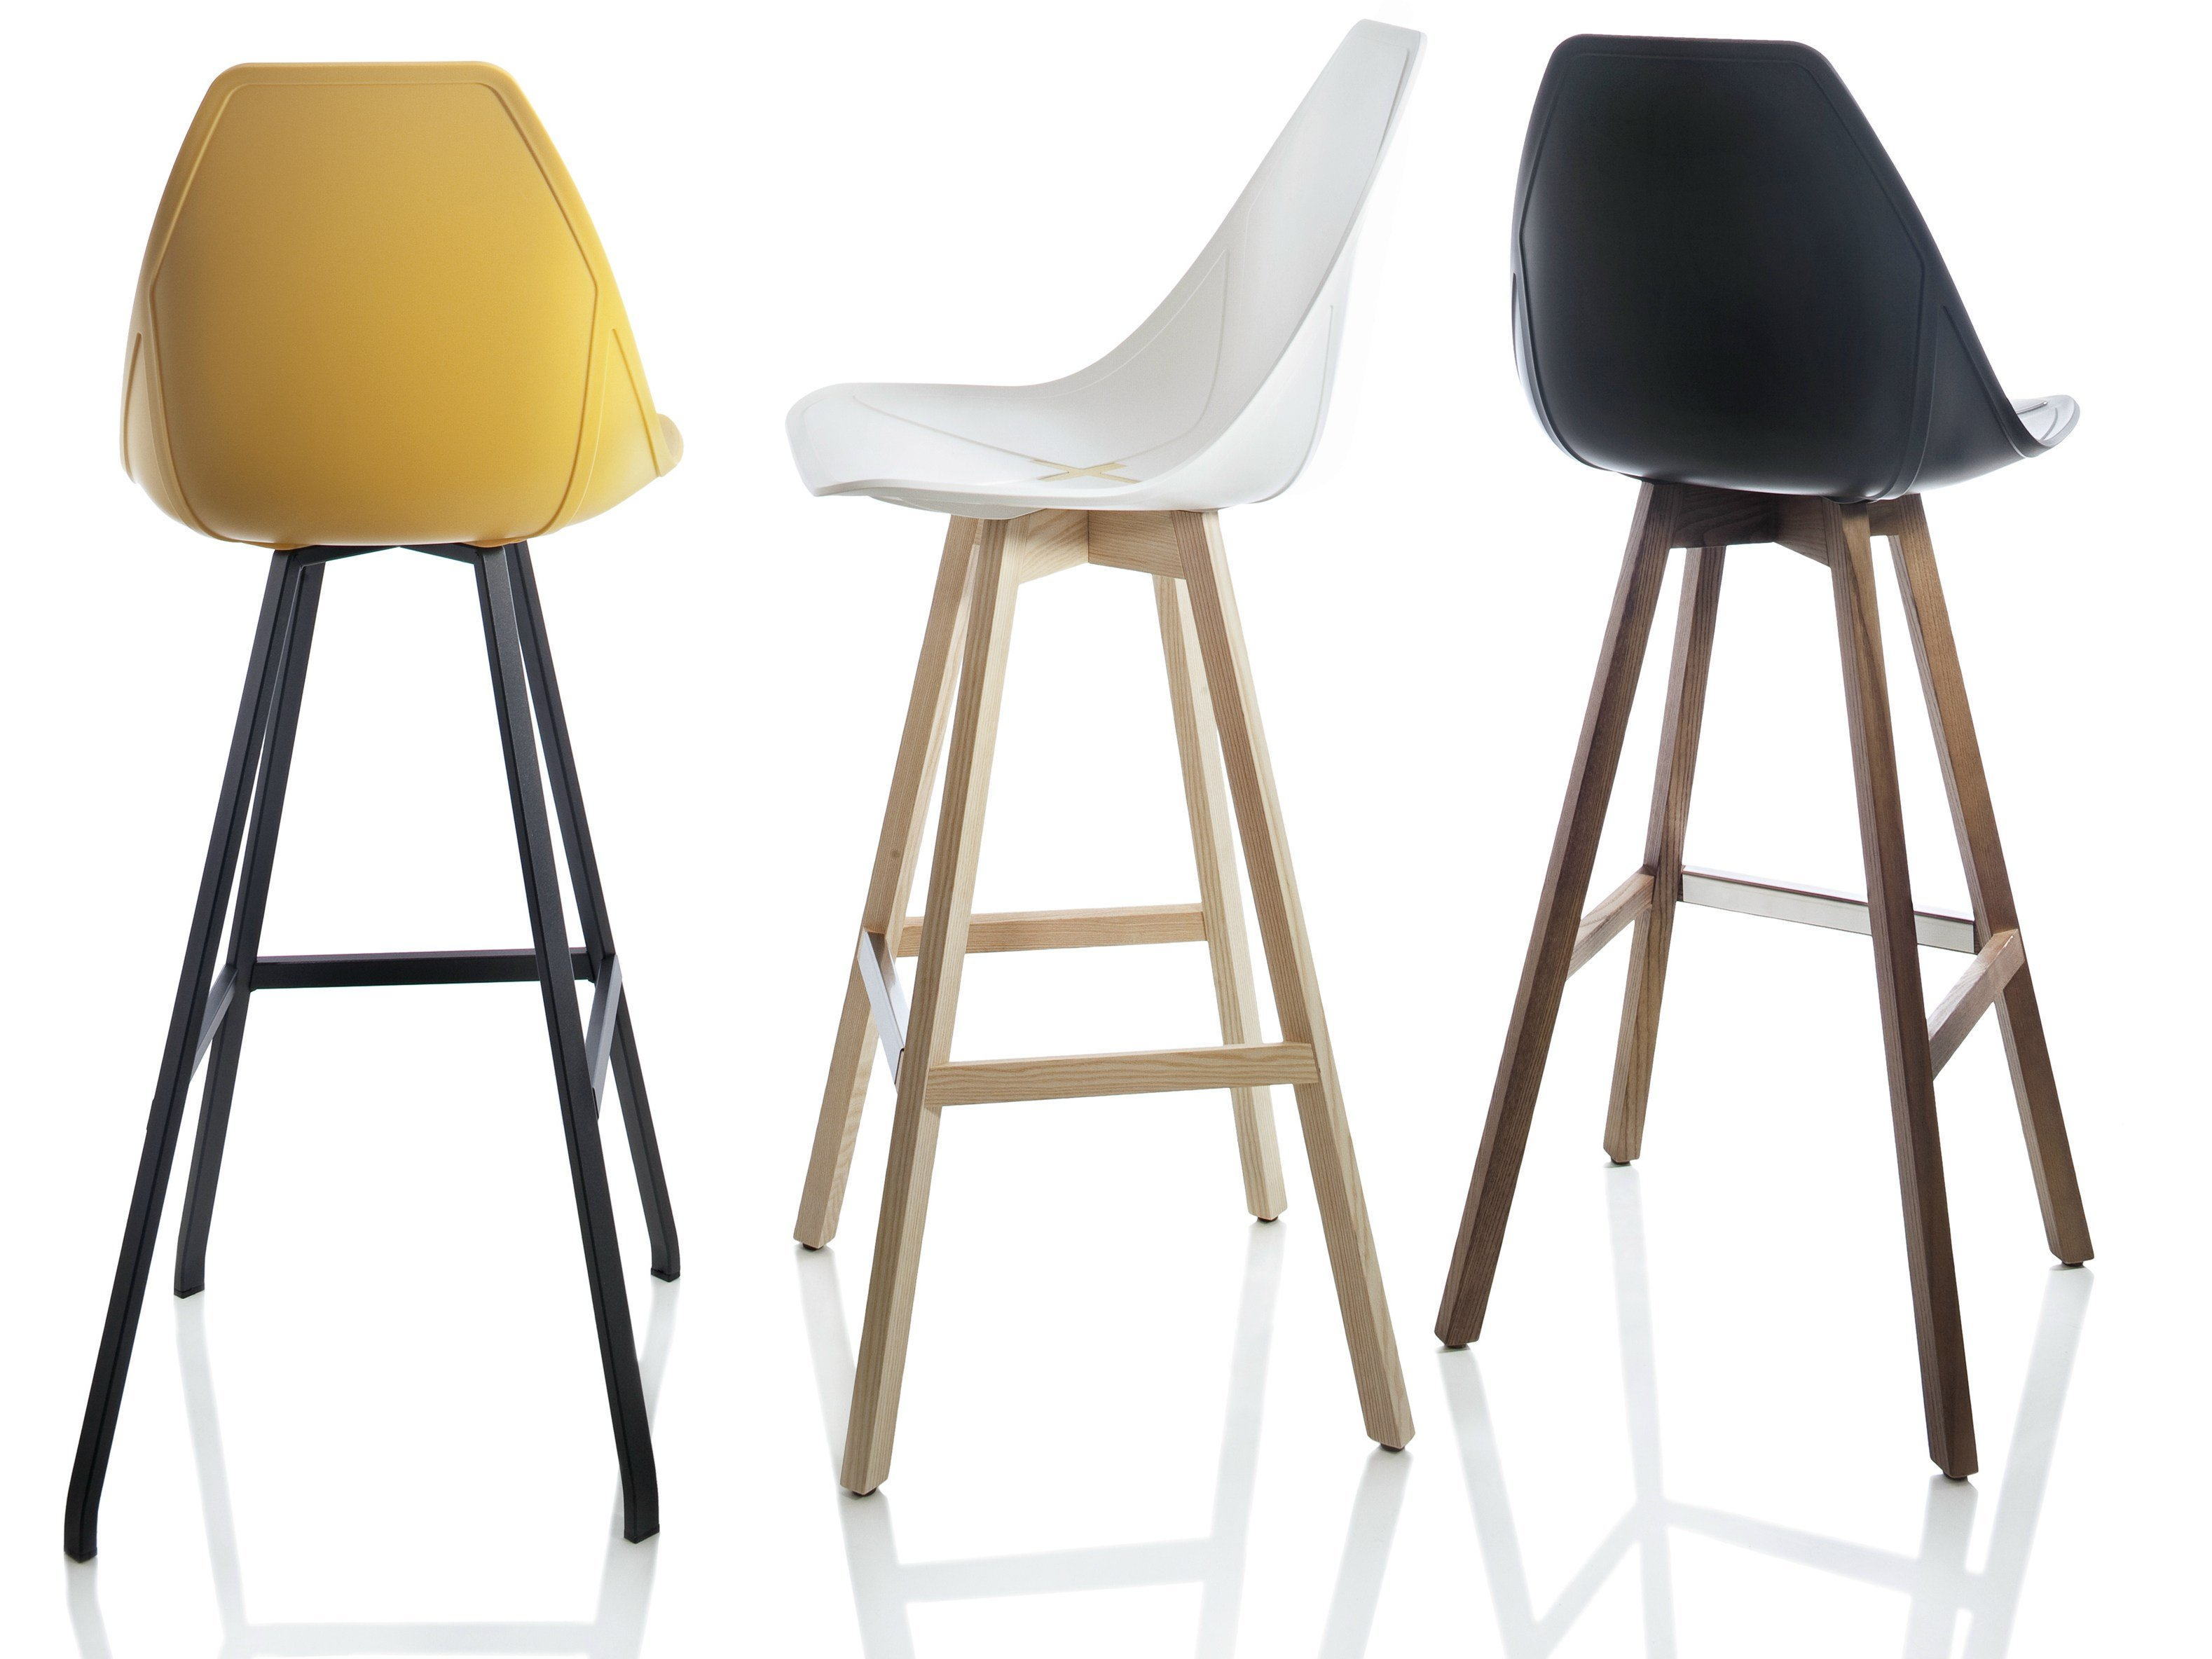 x stool barstuhl kollektion x stool by alma design design